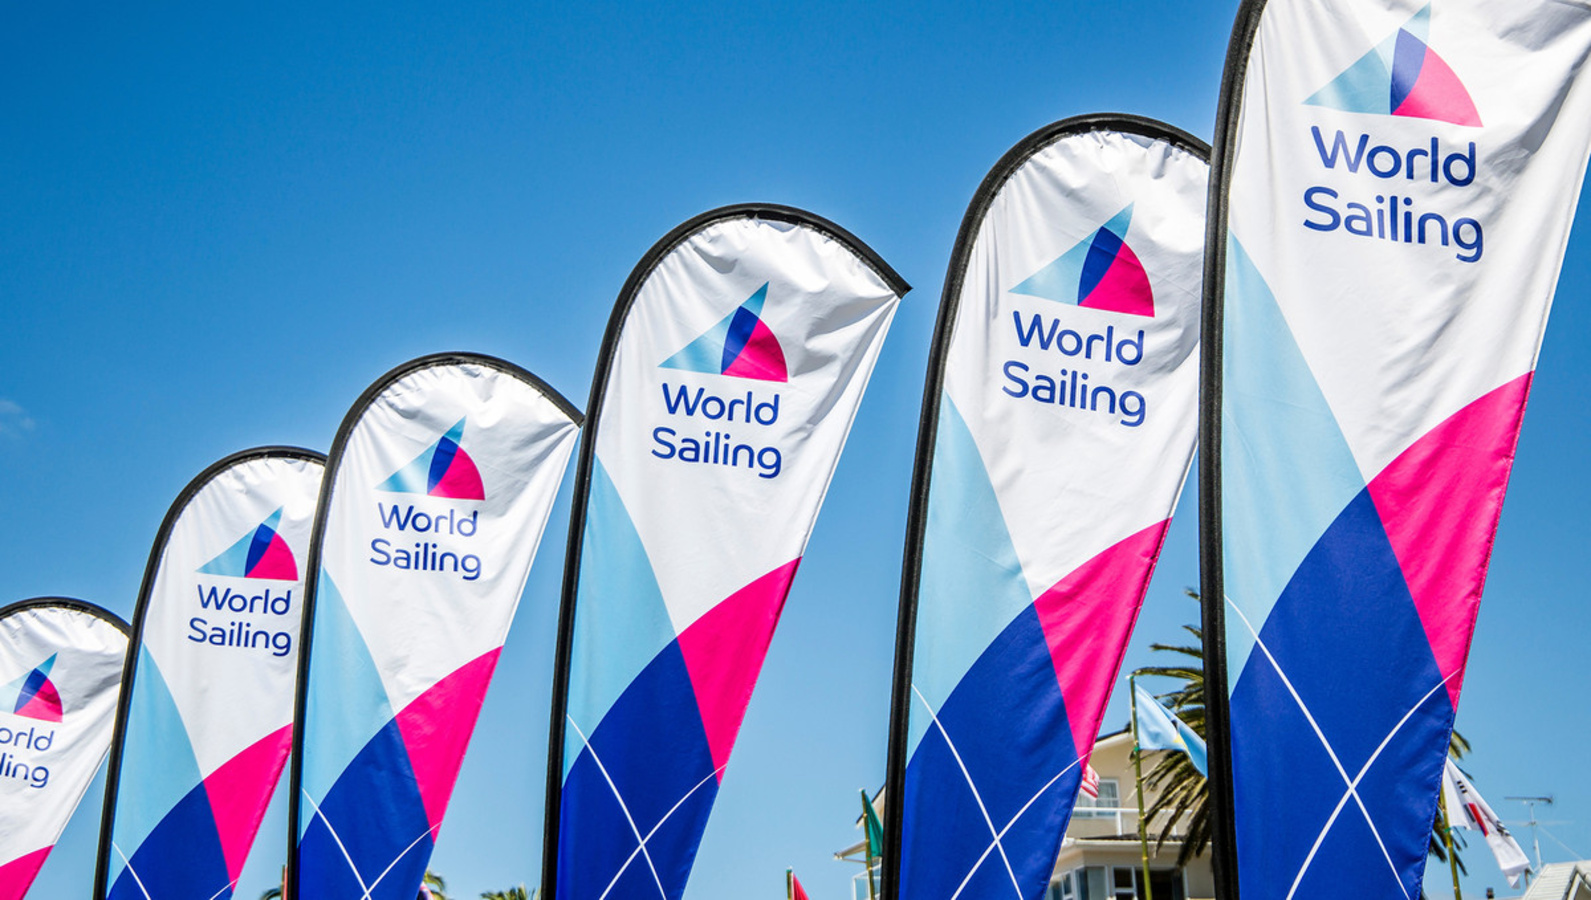 World Sailing receives positive industry response for Paris 2024 Mixed Keelboat Offshore Equipment